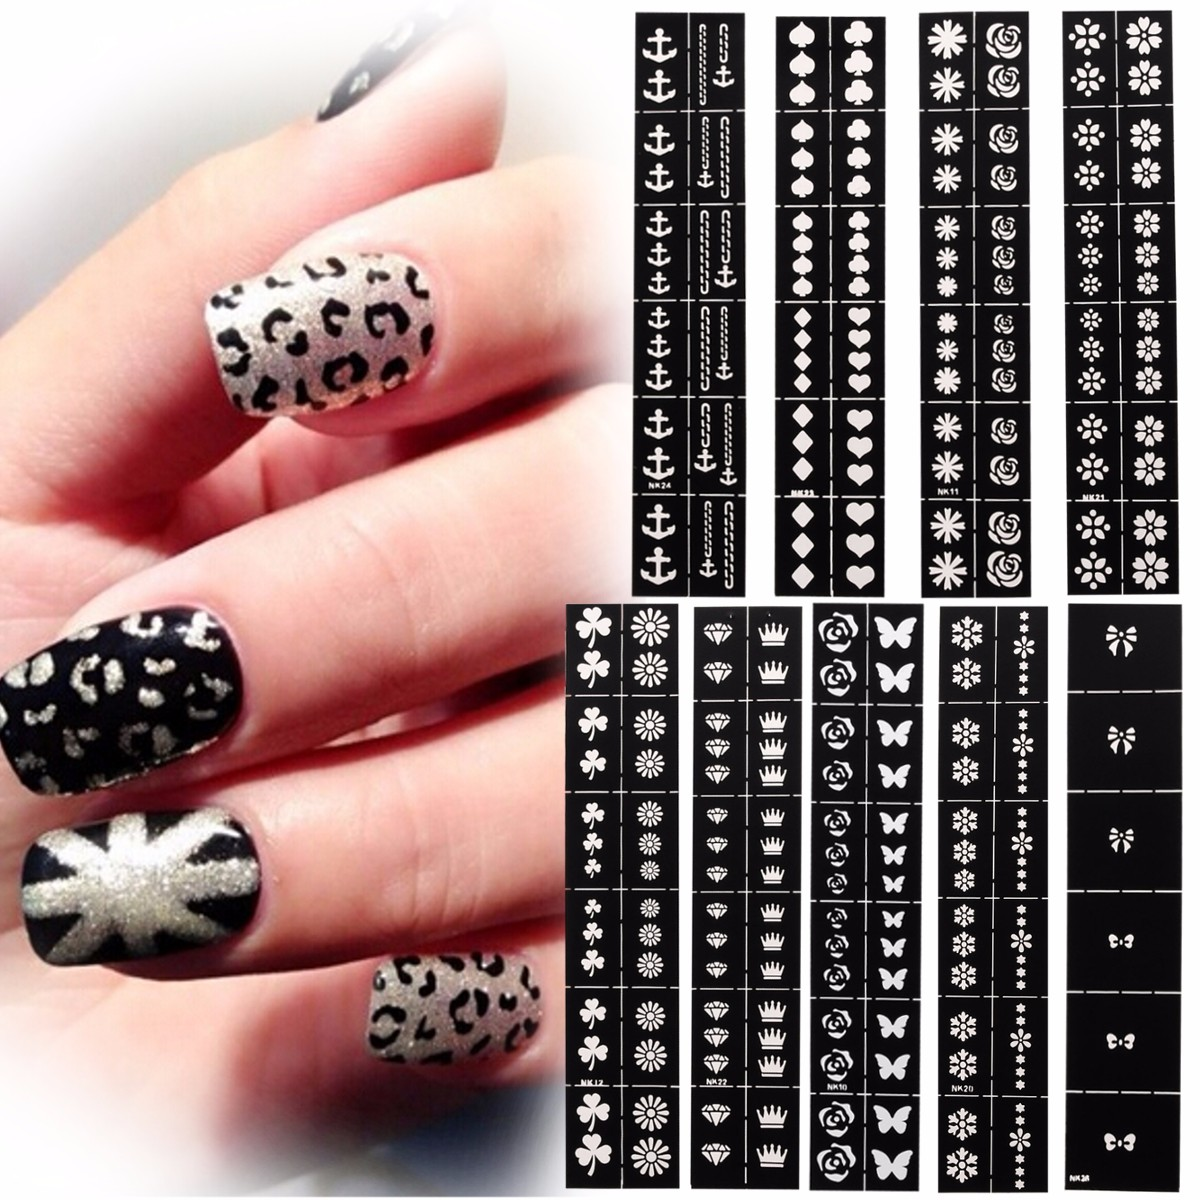 nail art stencils designs vinyl diecut stickers decal decoration tool alex nld. Black Bedroom Furniture Sets. Home Design Ideas